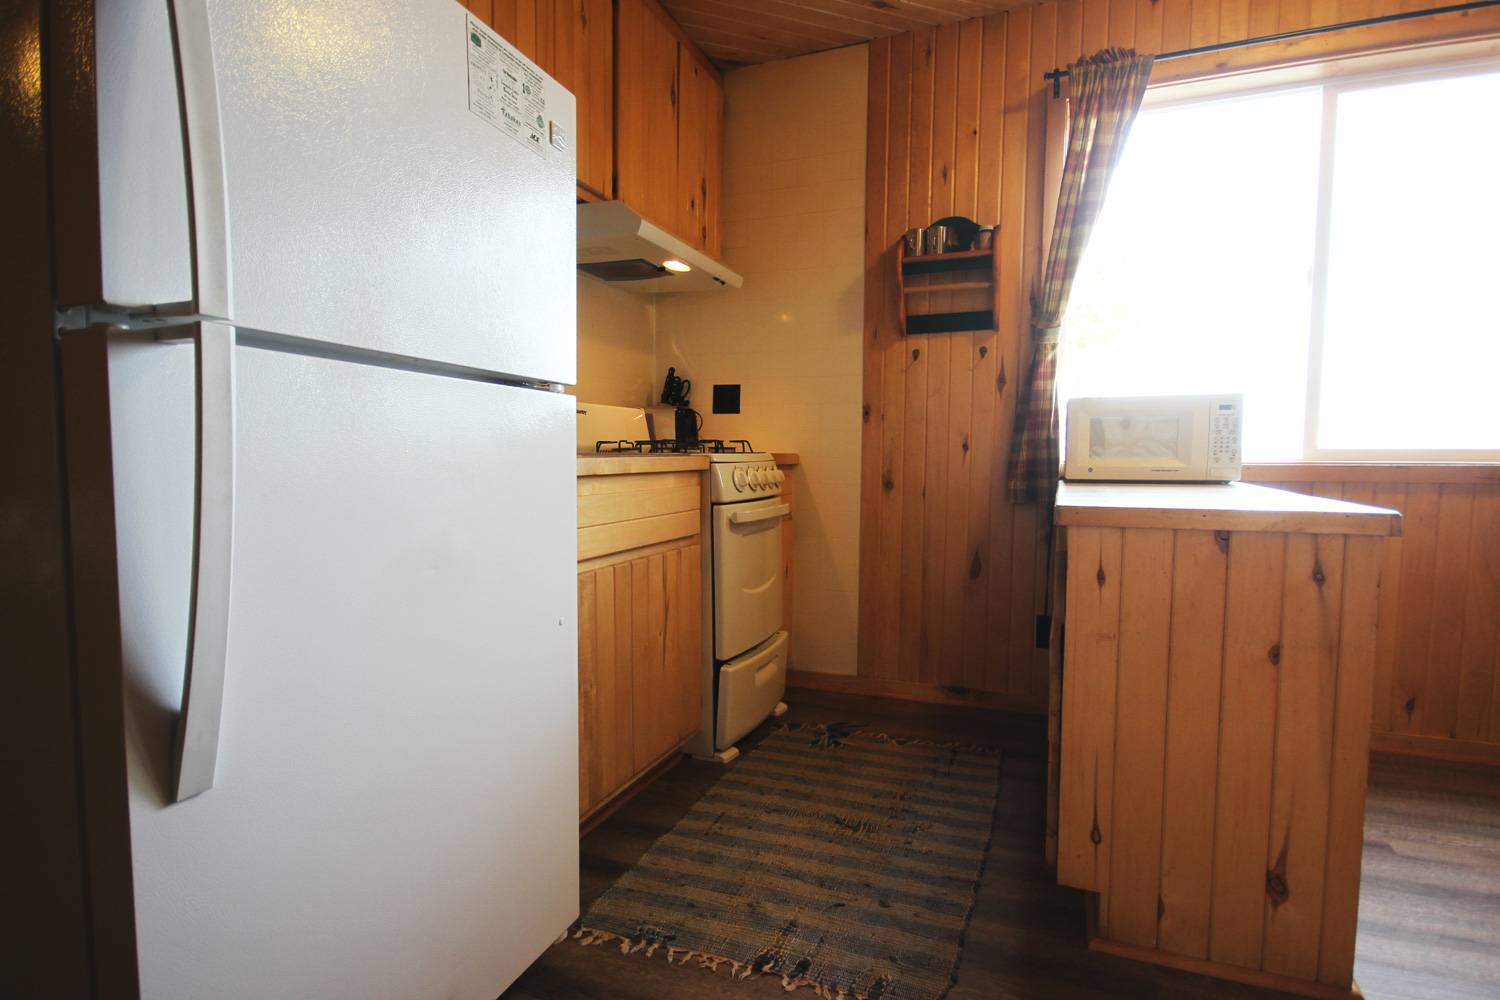 Galley Style Kitchen with all the basics and view of the lake